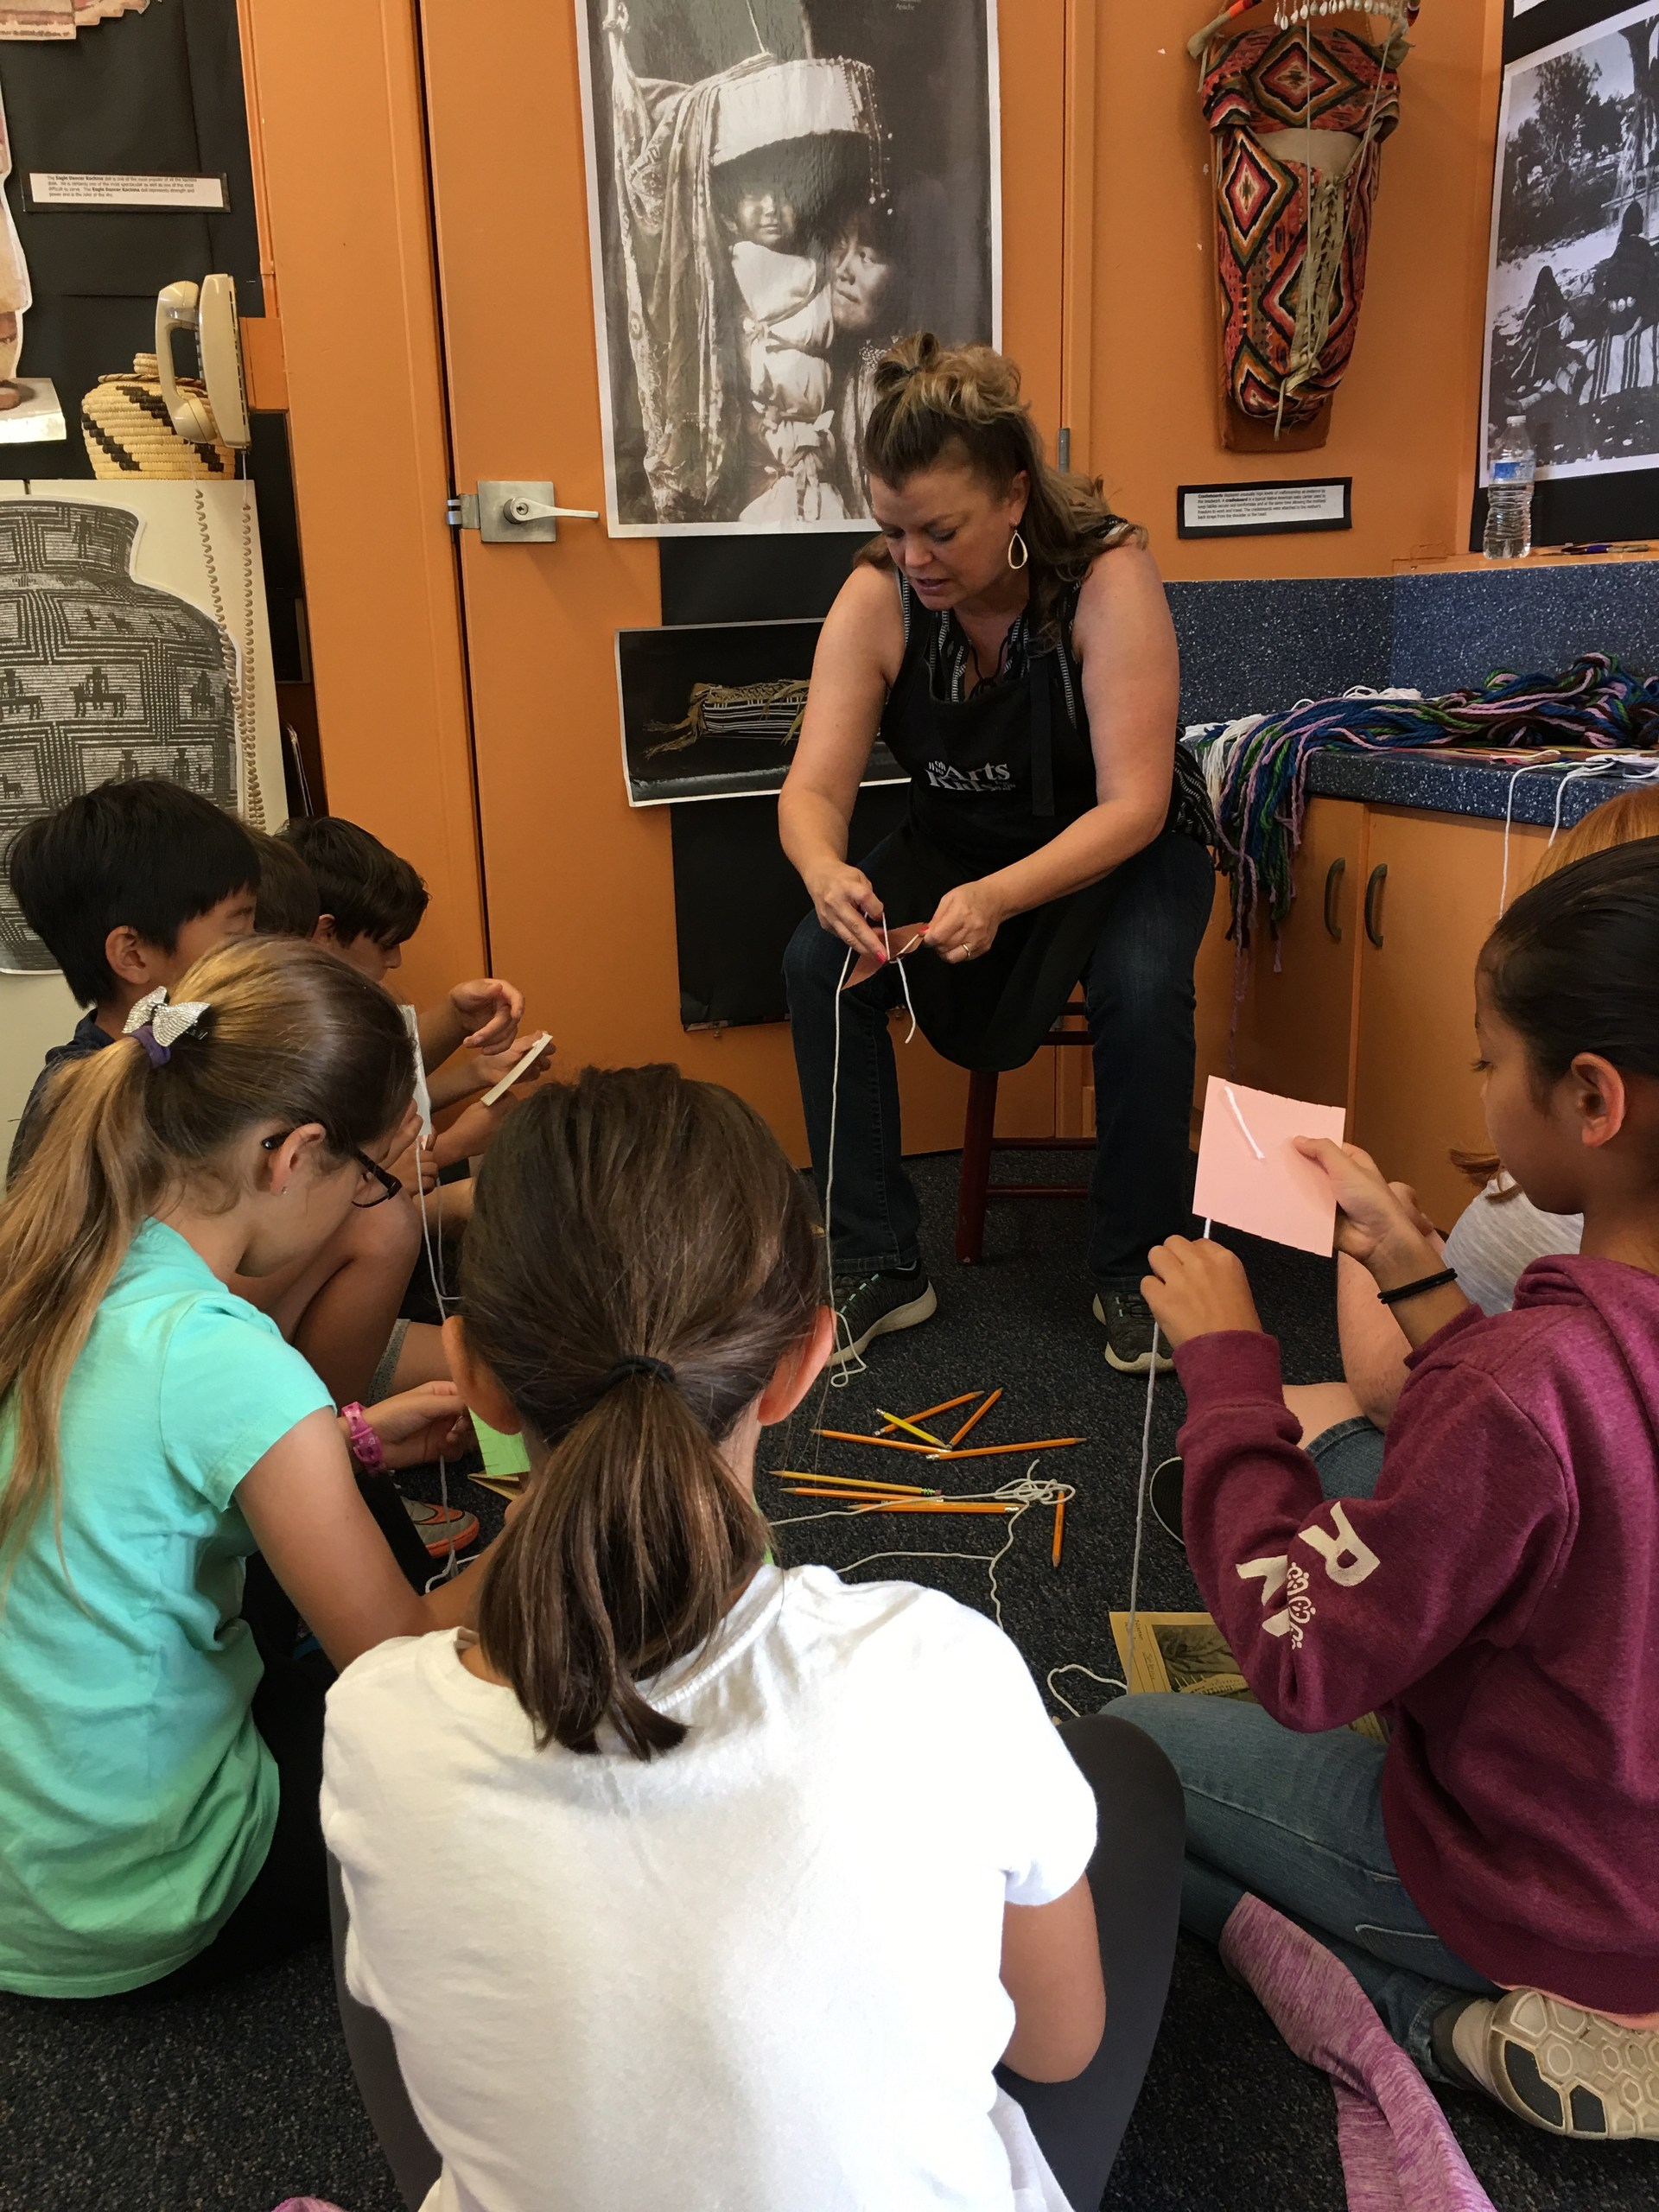 Students watching and artist demonstrate weaving.